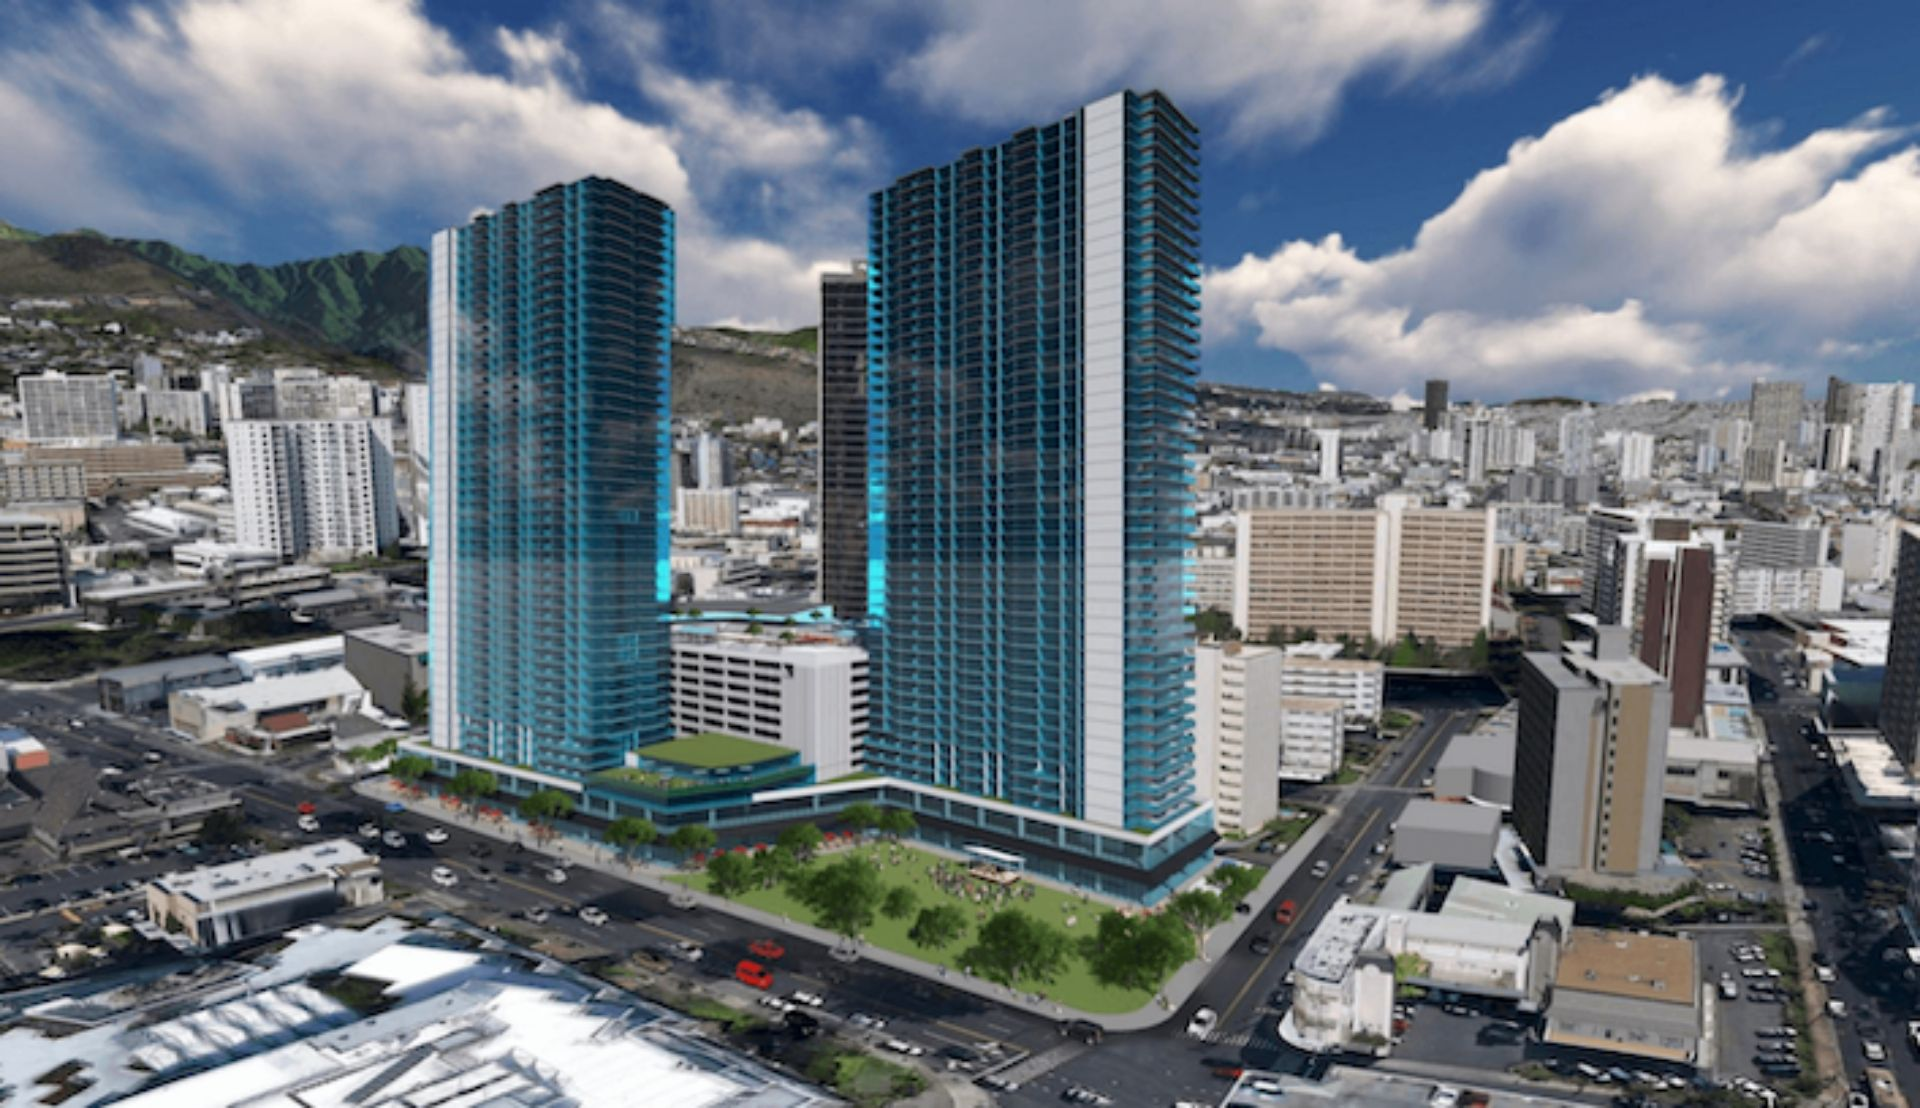 keeaumoku towers artist rendering of proposed condo towers